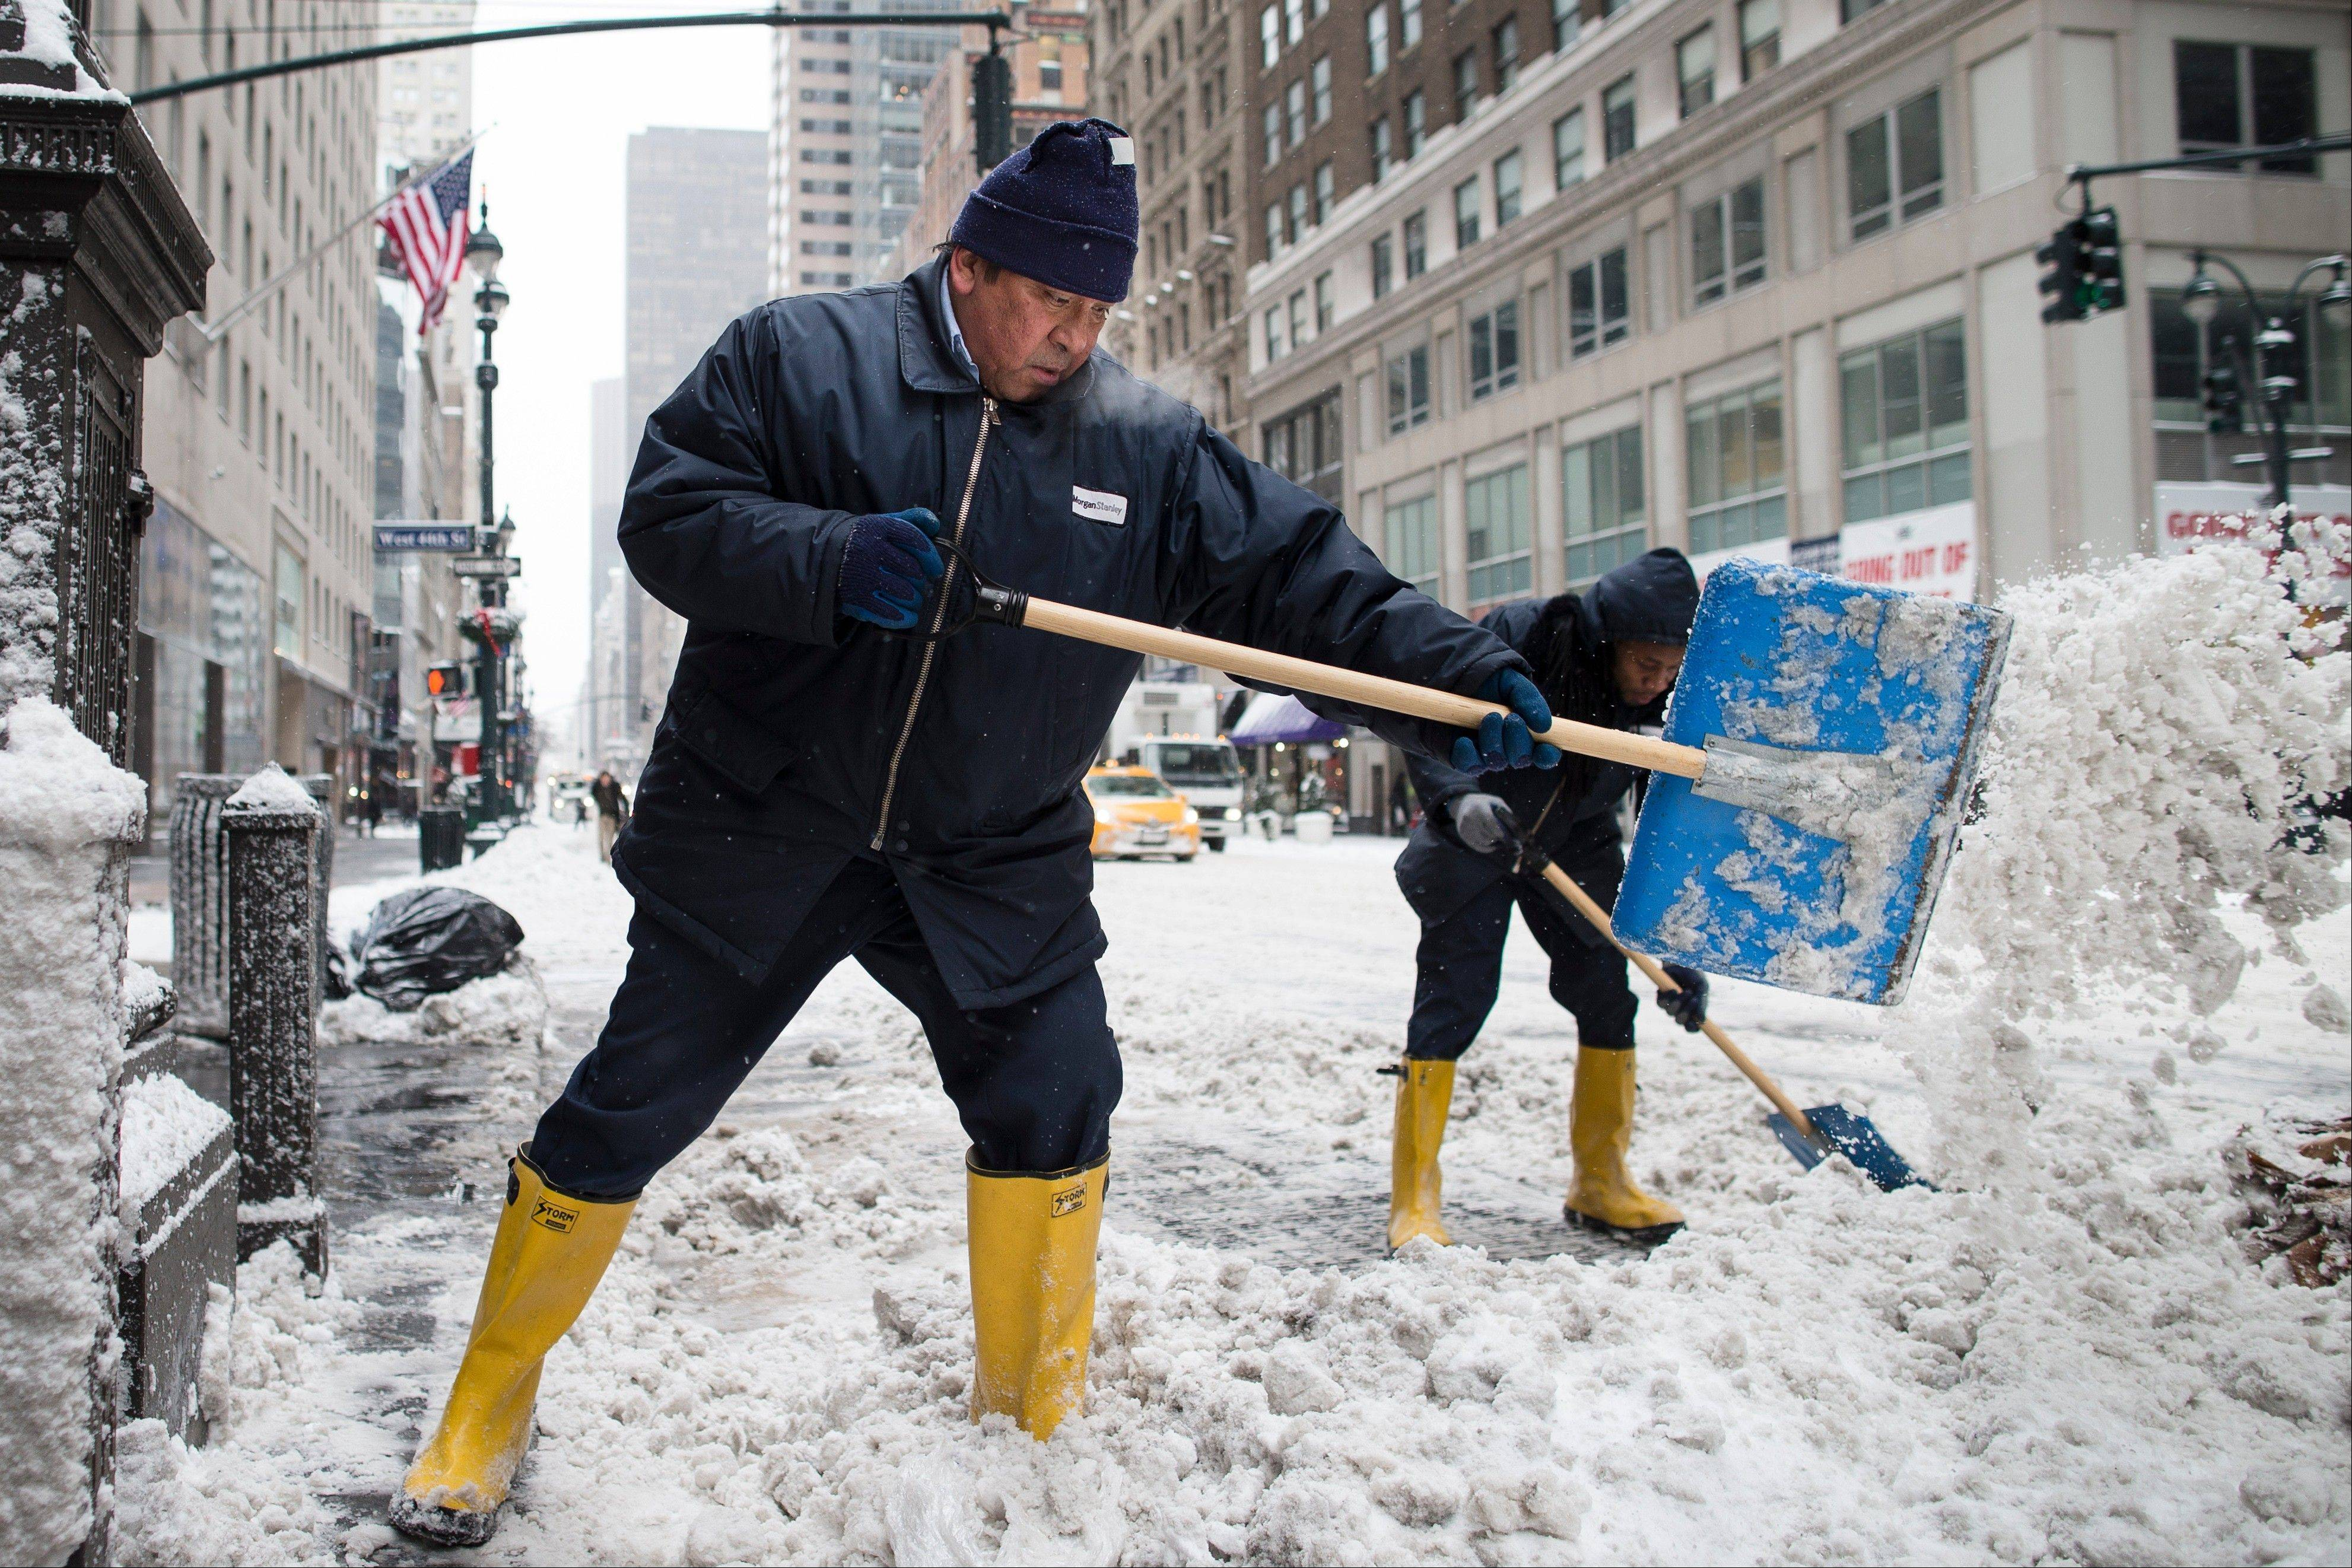 Workers clear sidewalks of snow on Fifth Avenue, Friday, Jan. 3, 2014, in New York. New York City public schools were closed Friday after up to 7 inches of snow fell by morning in the first snowstorm of the winter.